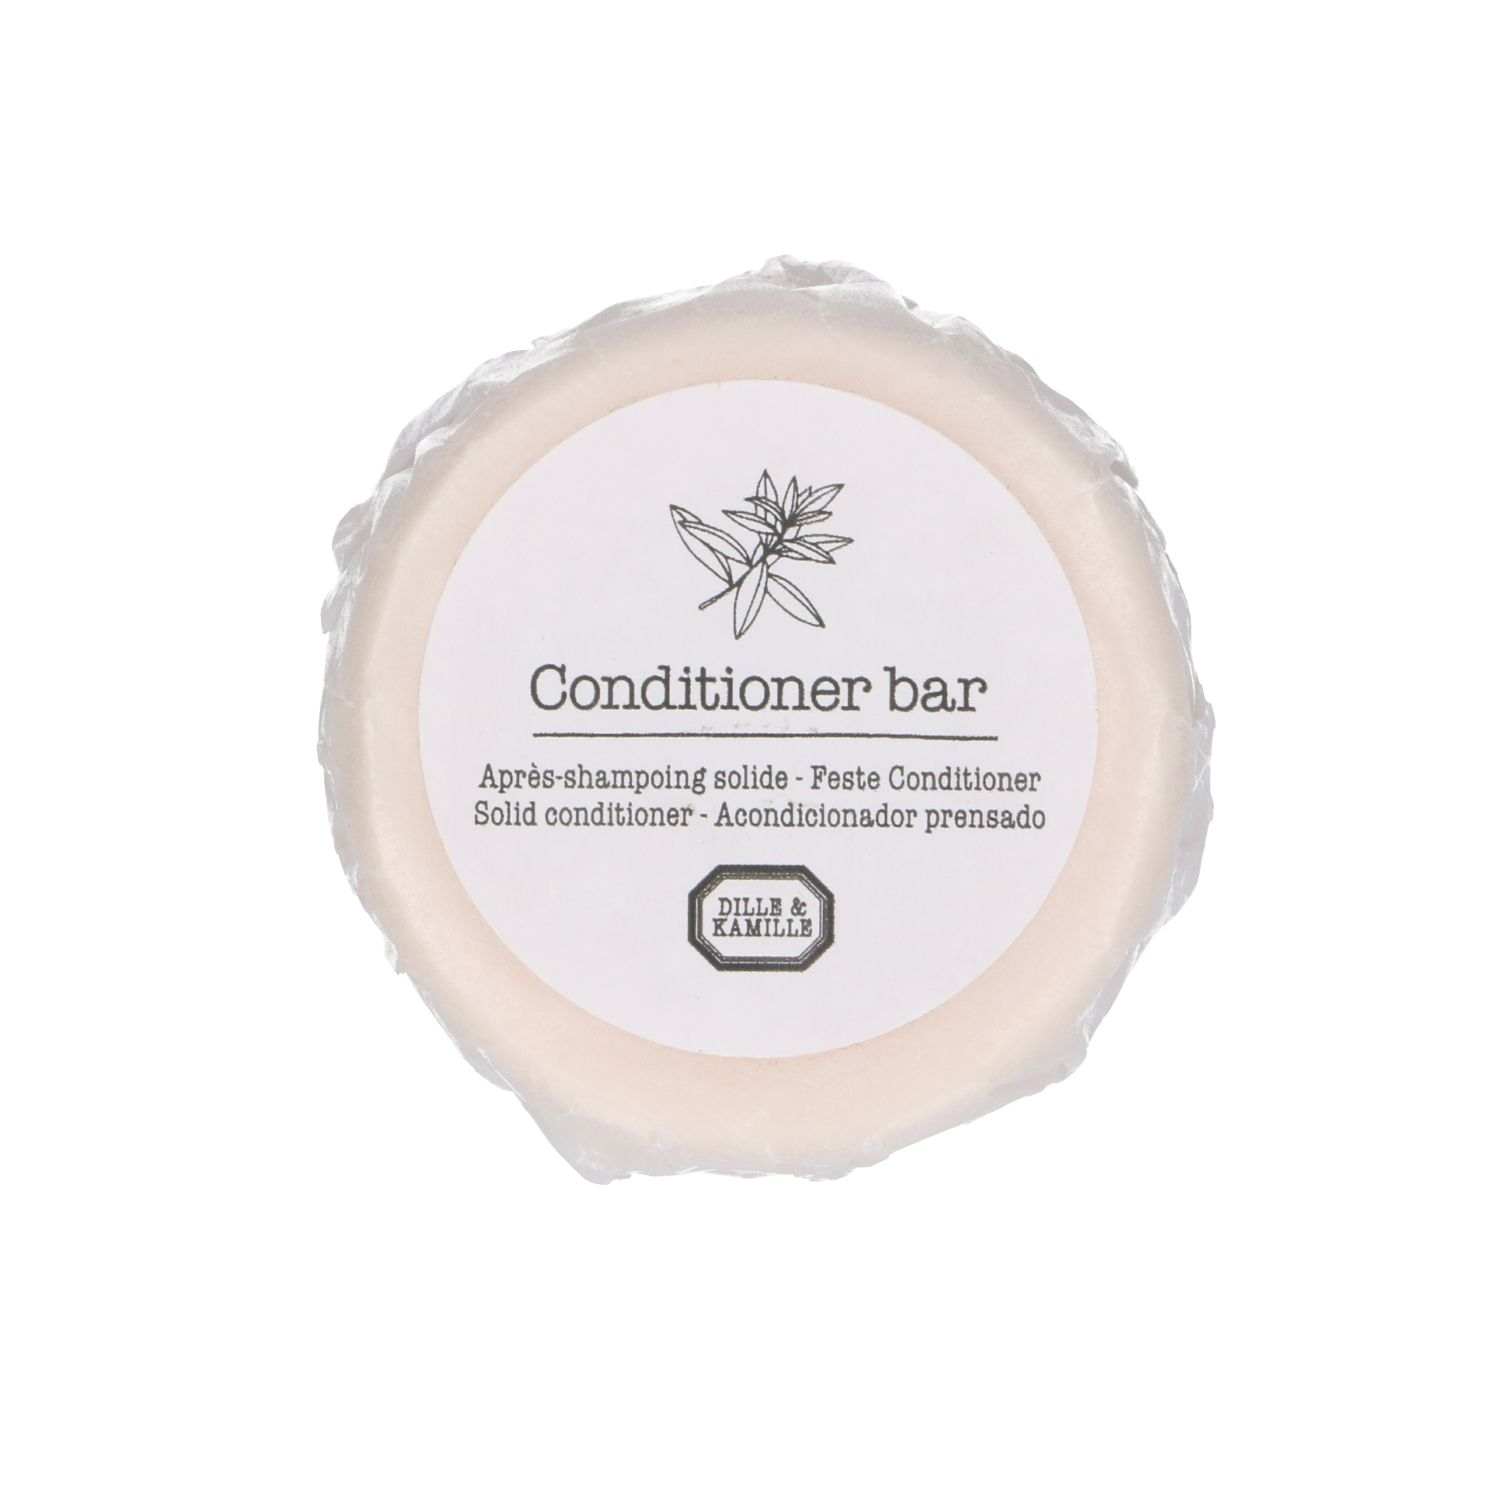 Après-shampoing solide, 75 g